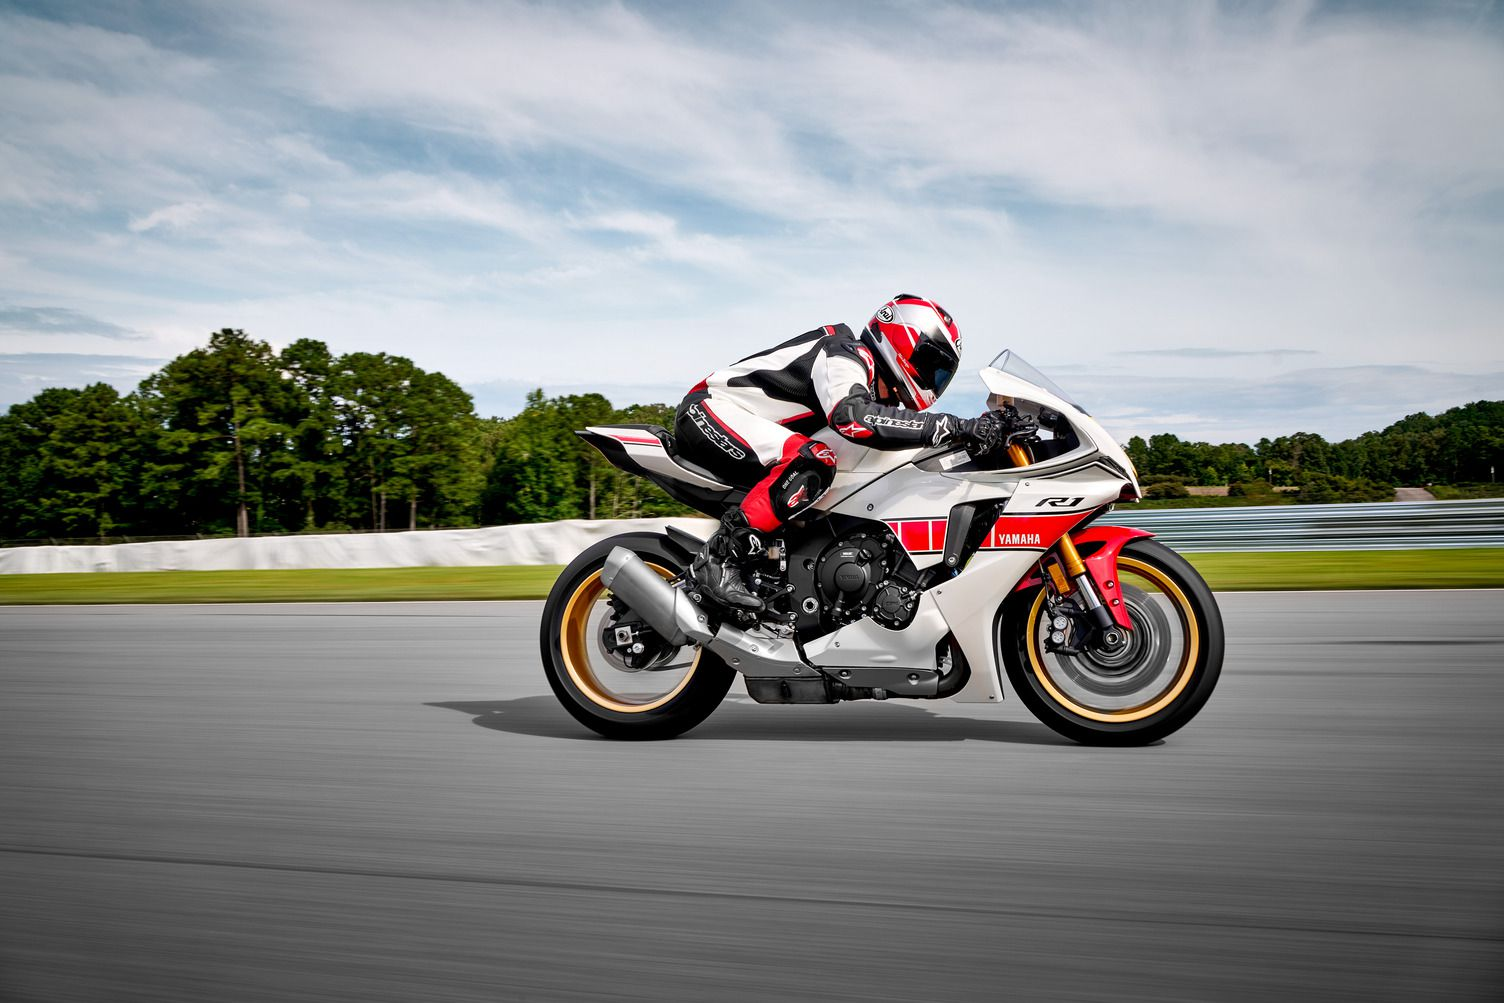 The YZF-R1 in the special-edition trim, which also includes gold wheels and fork and ID badging.